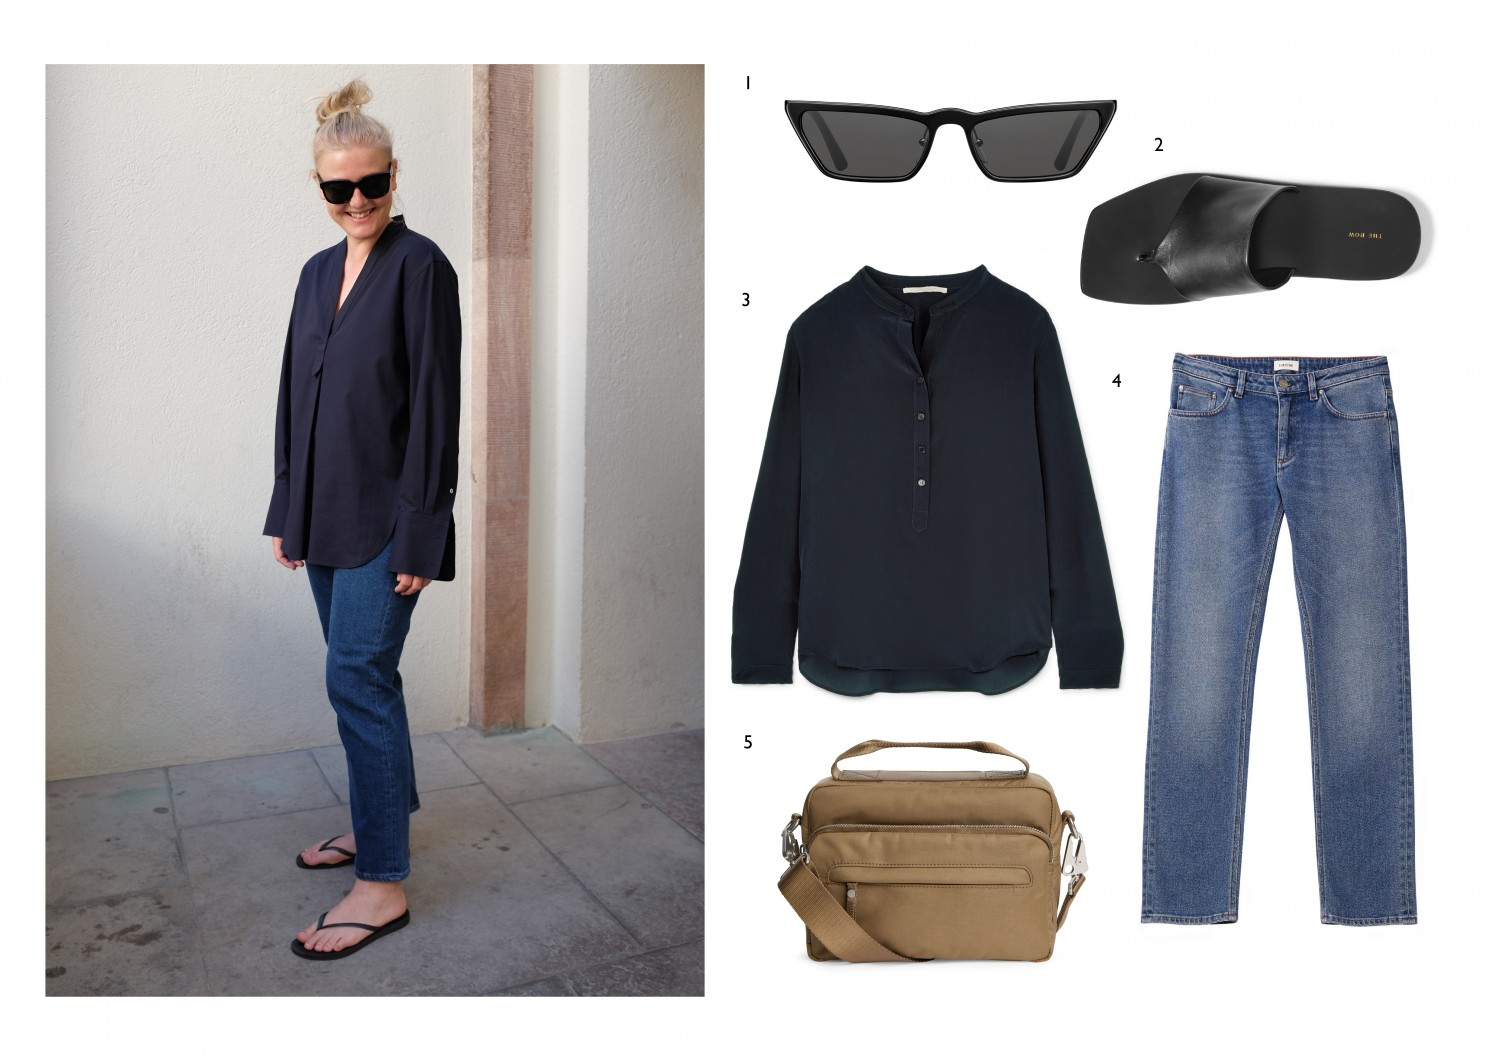 Everyday denim paired with a navy tunic - the perfect match for a warm summer night. Combine with flip flops and sunglasses